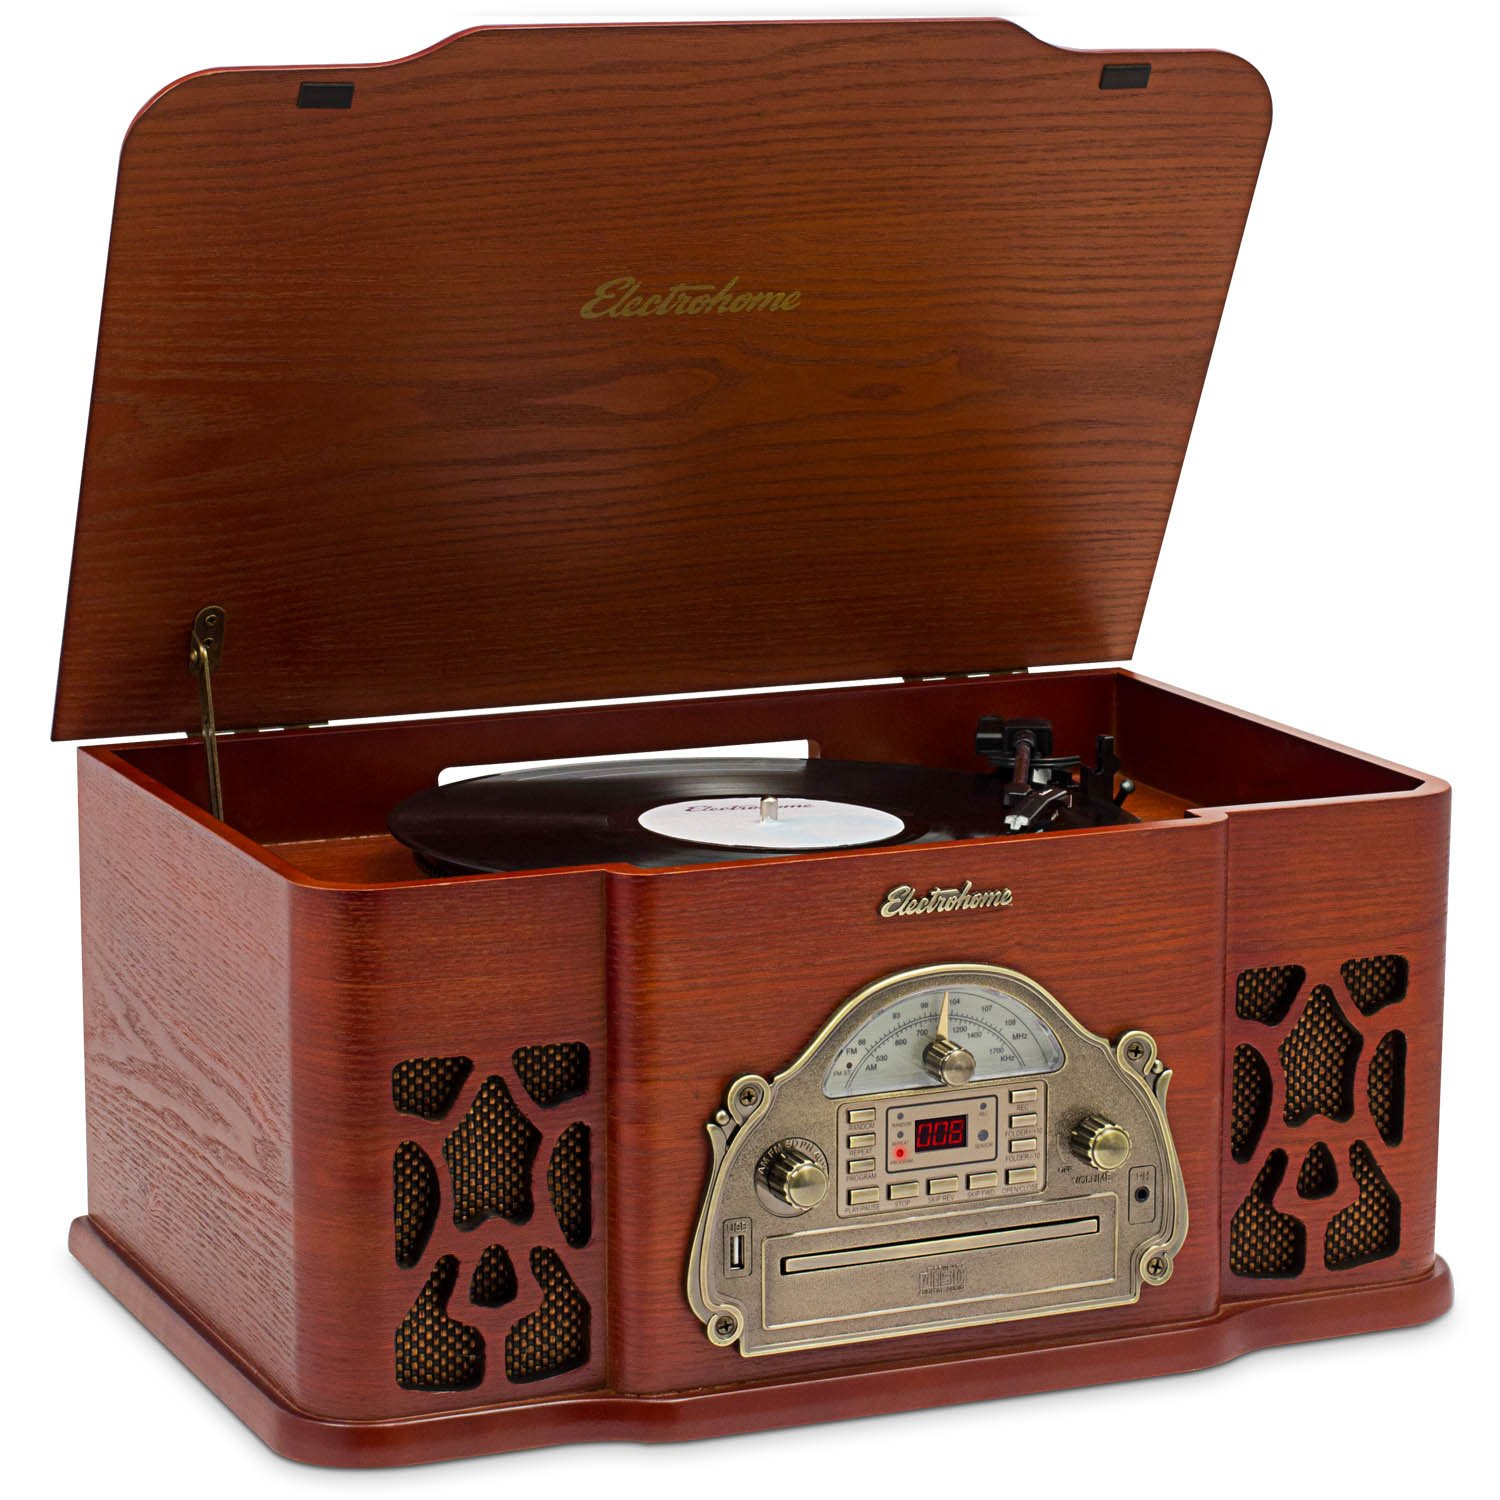 Electrohome Record Player Retro Vinyl Turntable Real Wood Stereo System